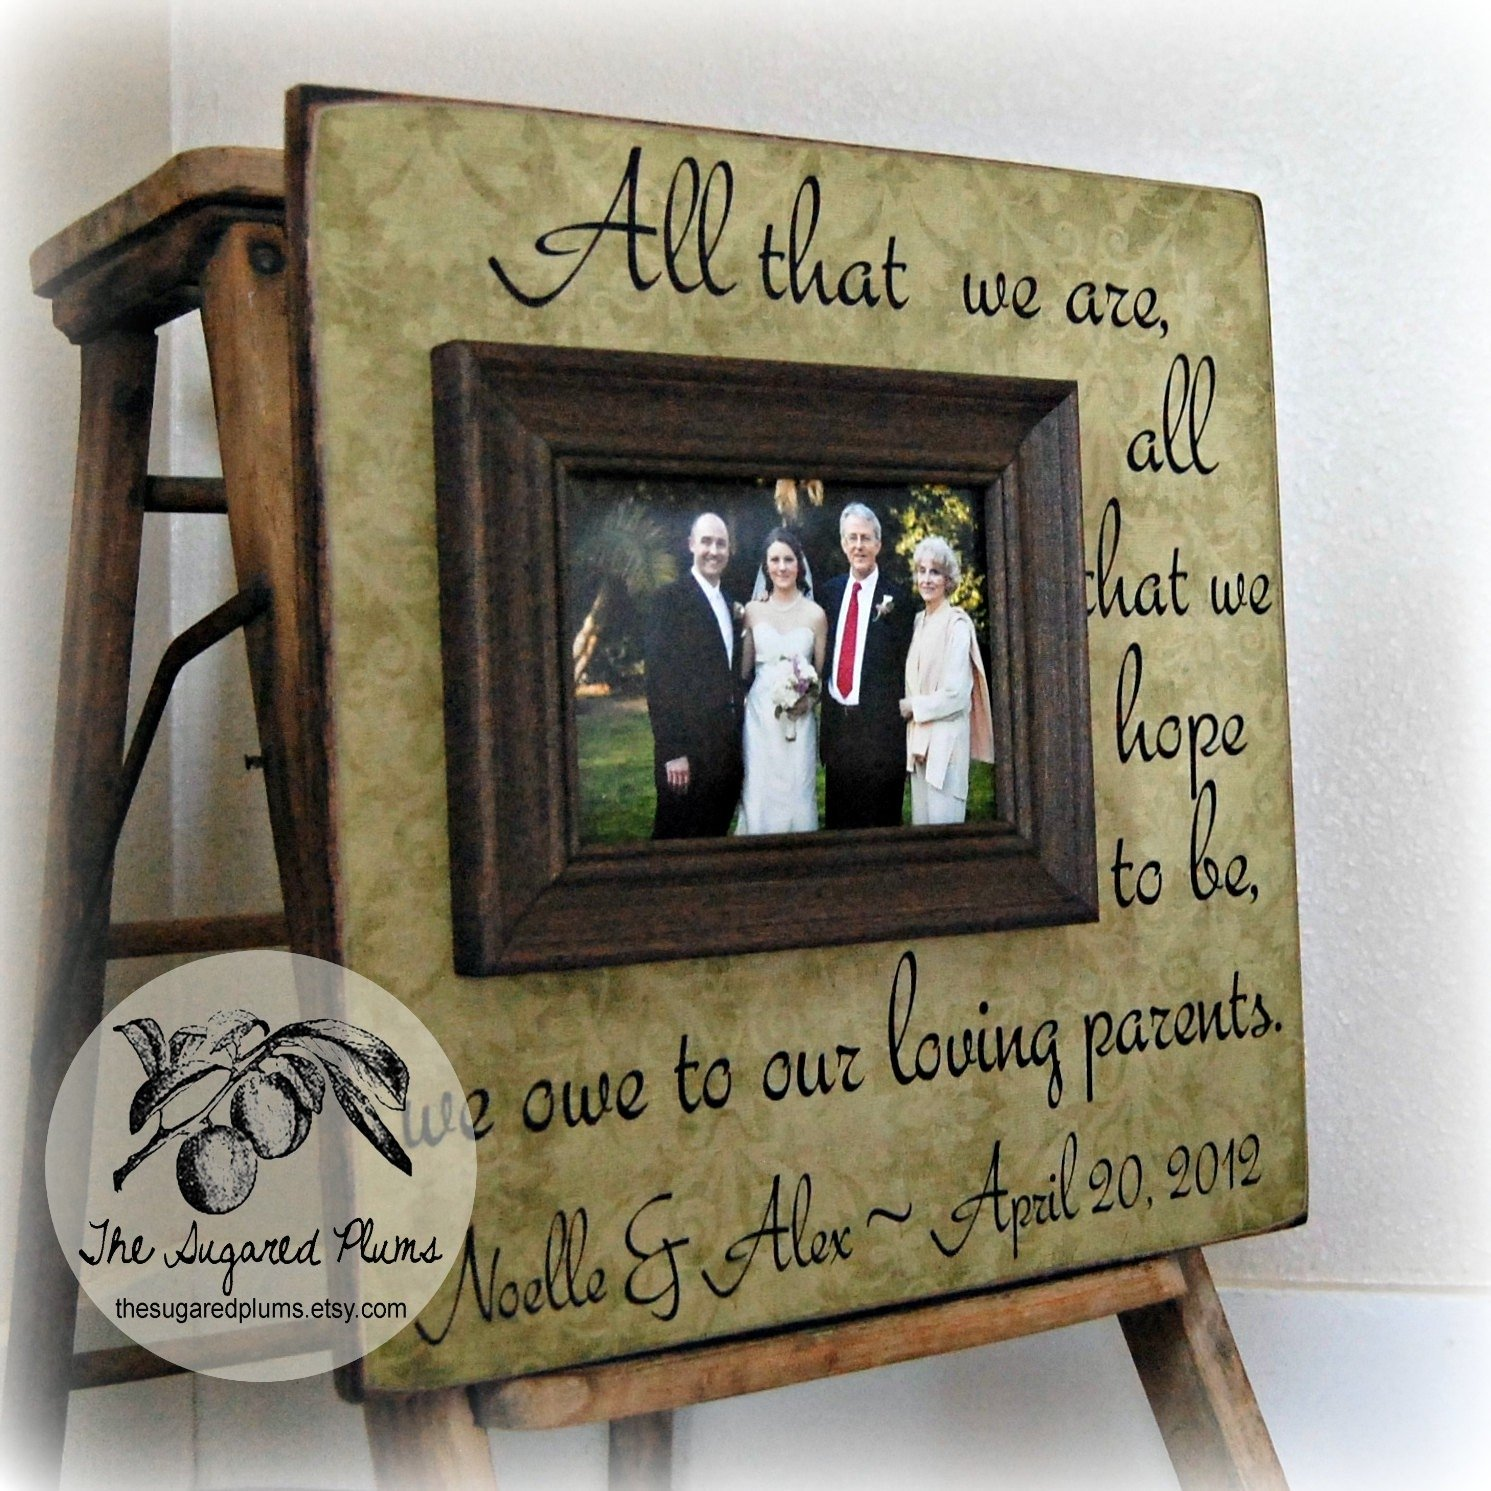 10 Fabulous Wedding Anniversary Gift Ideas For Parents ideas for wedding anniversary gifts for parents inspirational